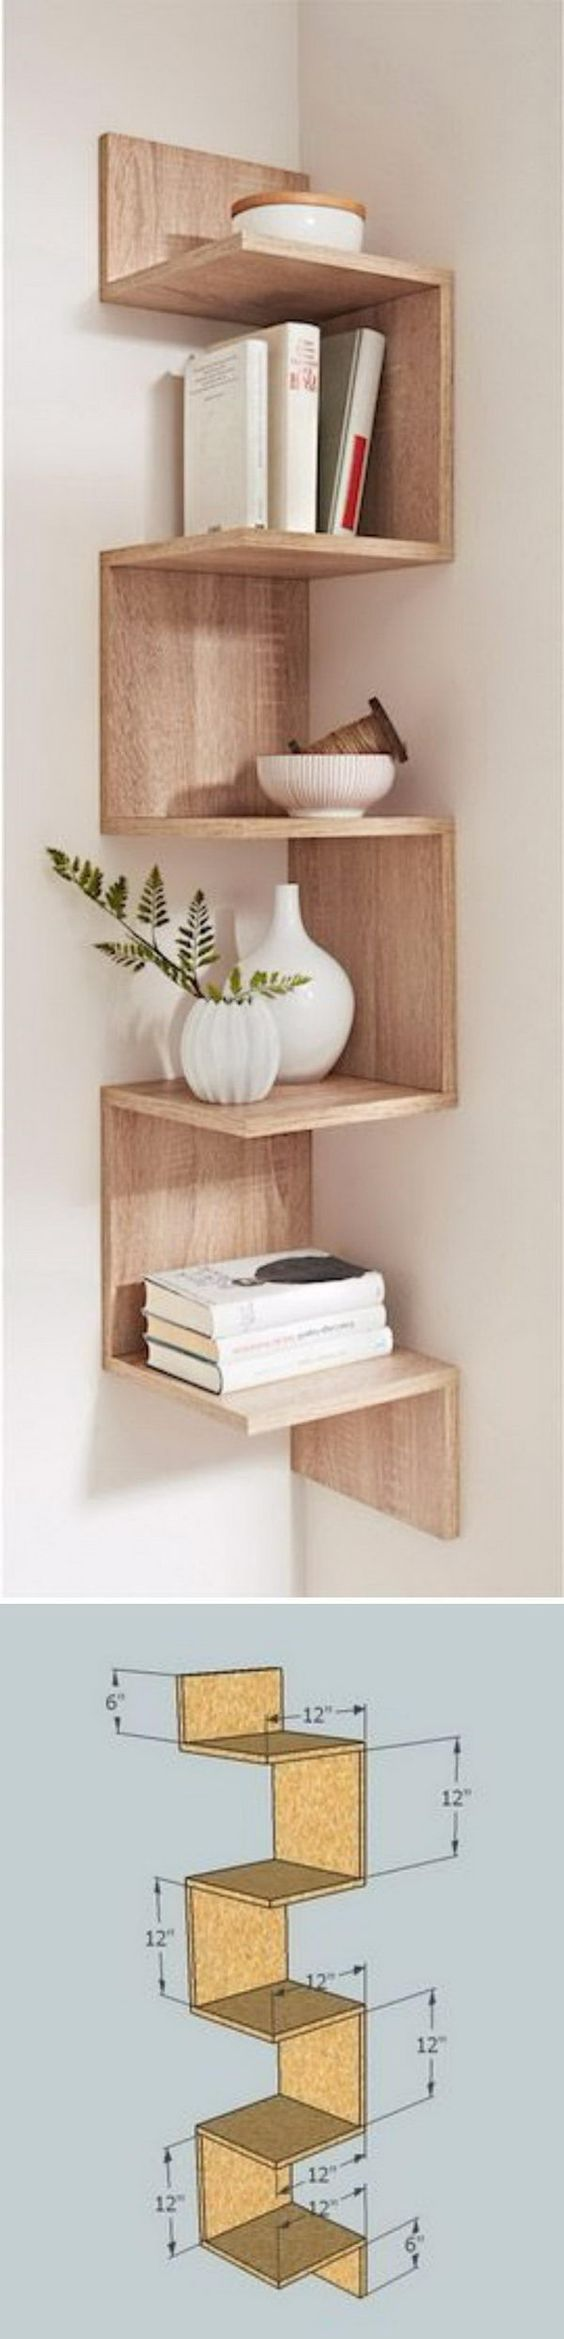 Cool Shelving Brilliant Best 25 Shelf Ideas Ideas On Pinterest  Shelves Box Shelves And . Design Decoration